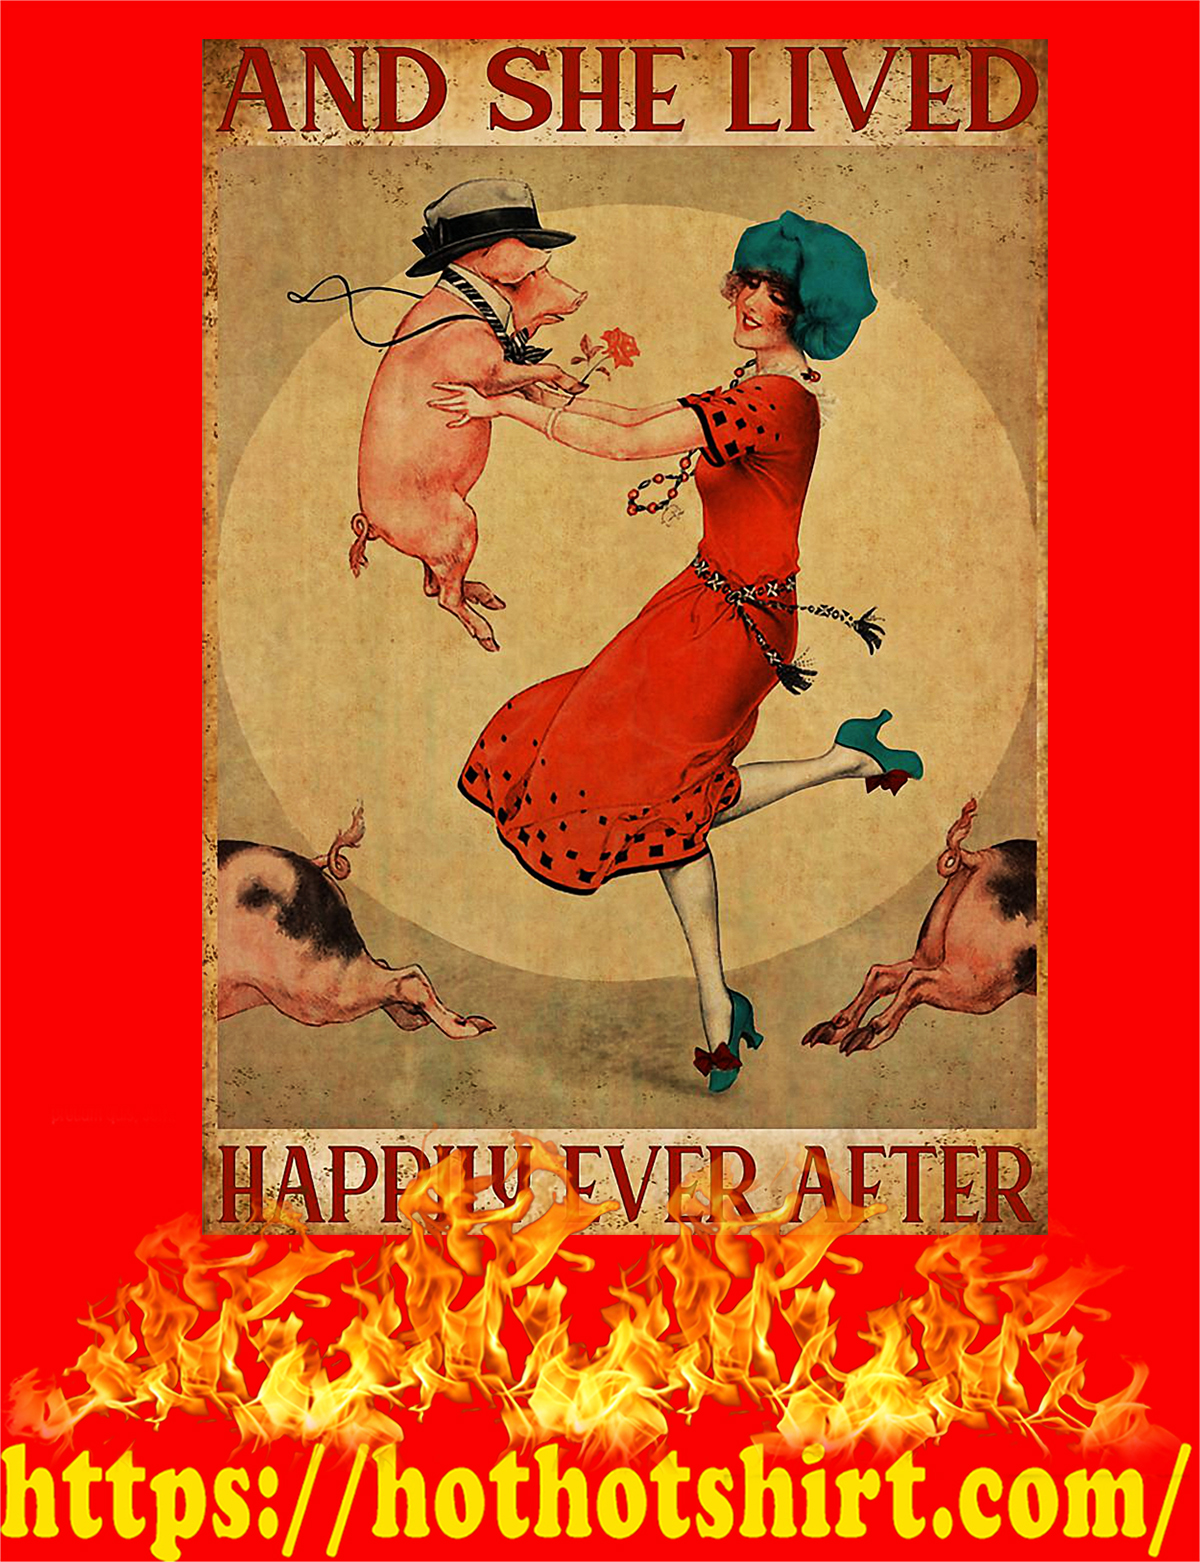 Pig And she lived happily ever after poster - A2